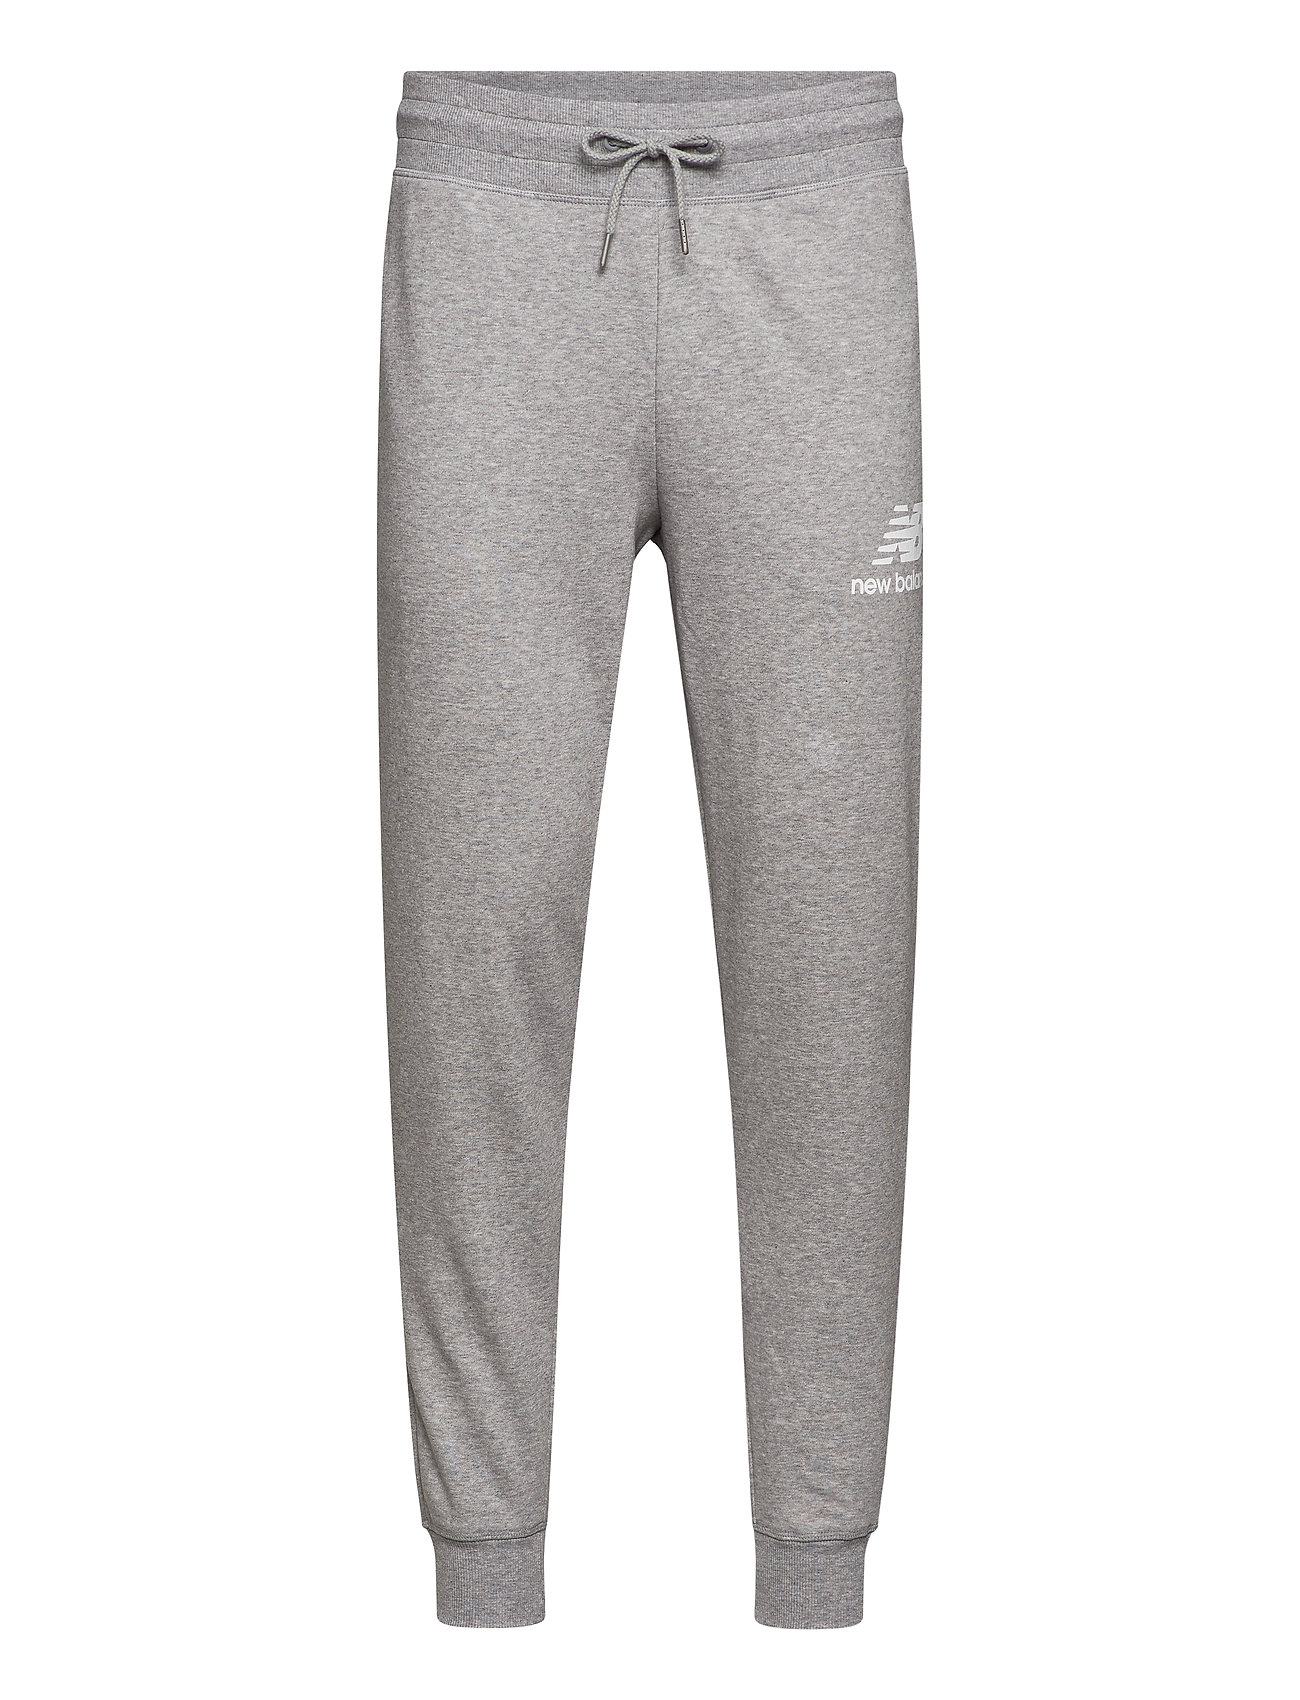 Image of Essentials Stacked Logo Sweatpant Sweatpants Hyggebukser Grå New Balance (3440208995)